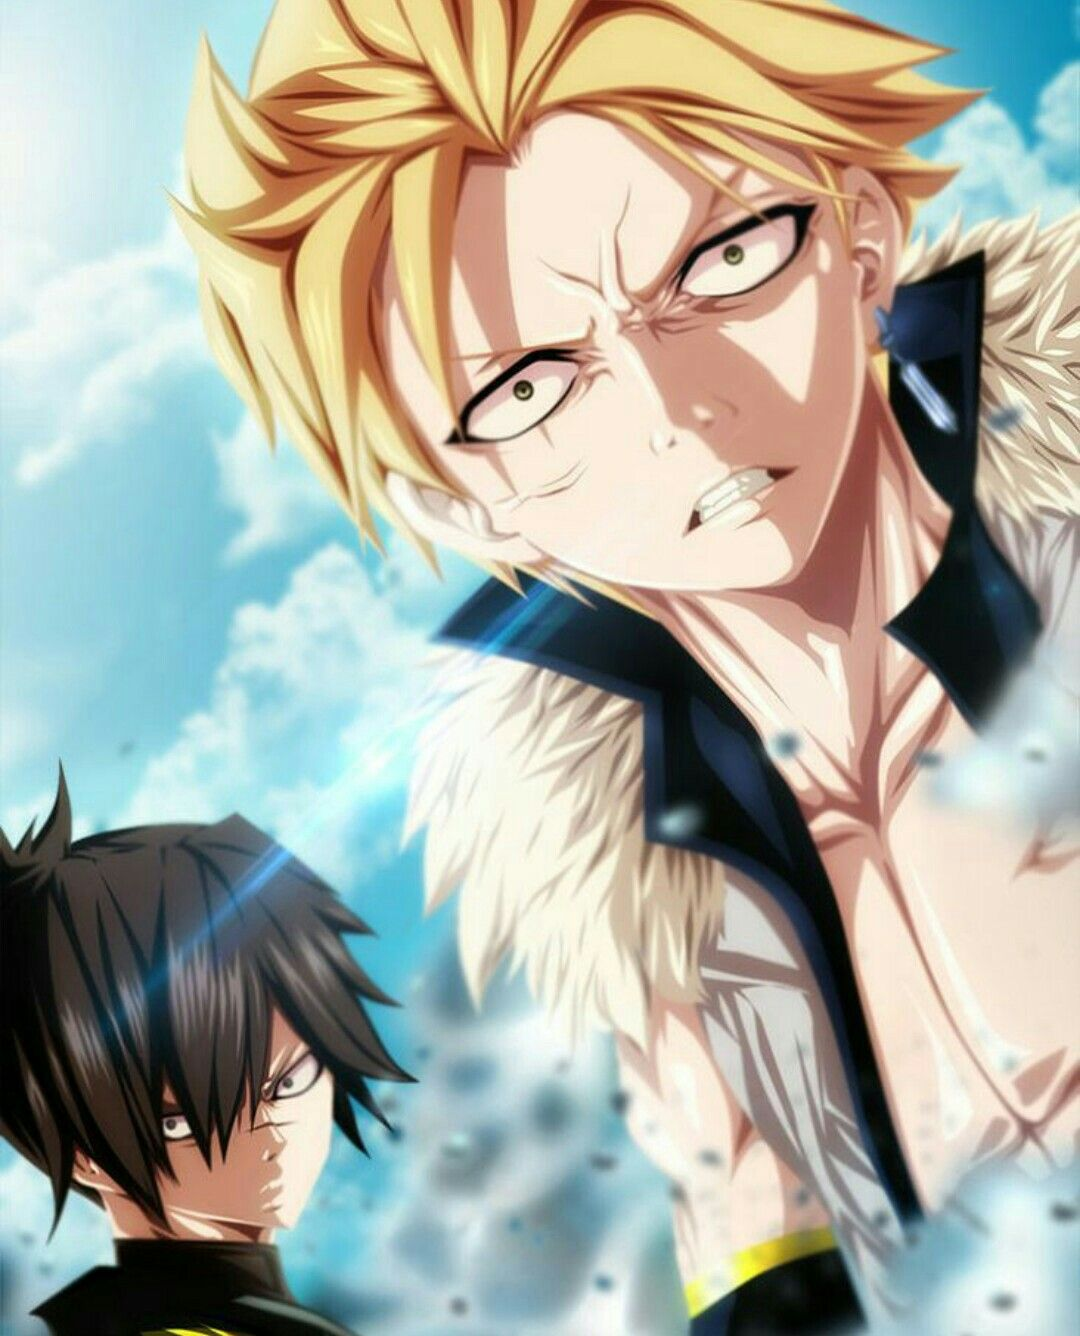 Pin by Kylie Bowman on Fairy Tail.